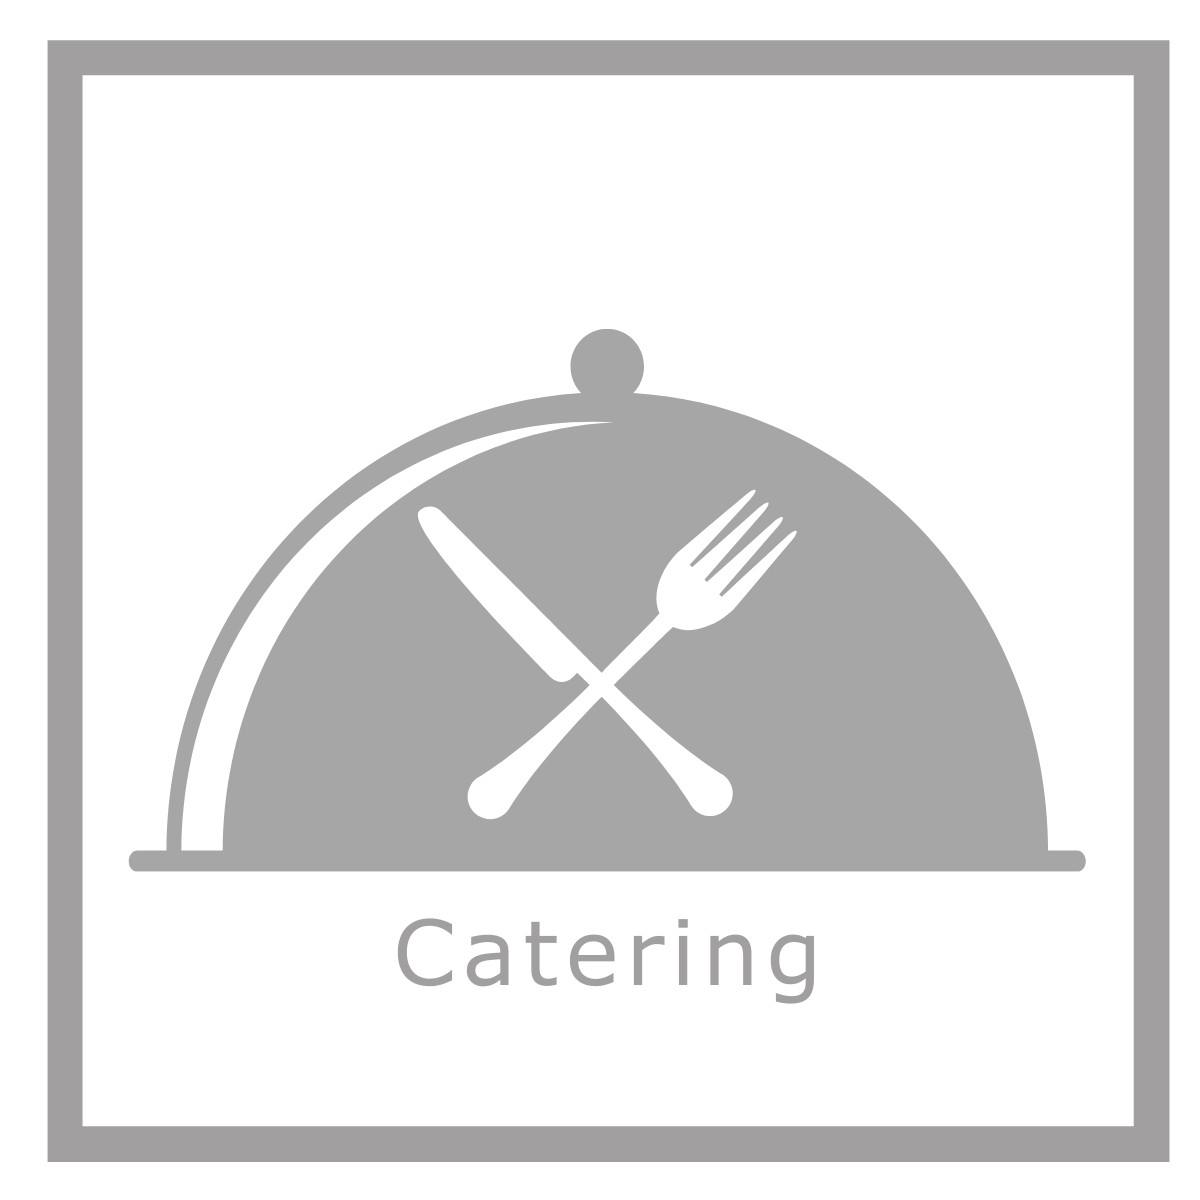 Catering- Concierge Service at The Water Tower Lounge Amenity Center by Meet Hospitality